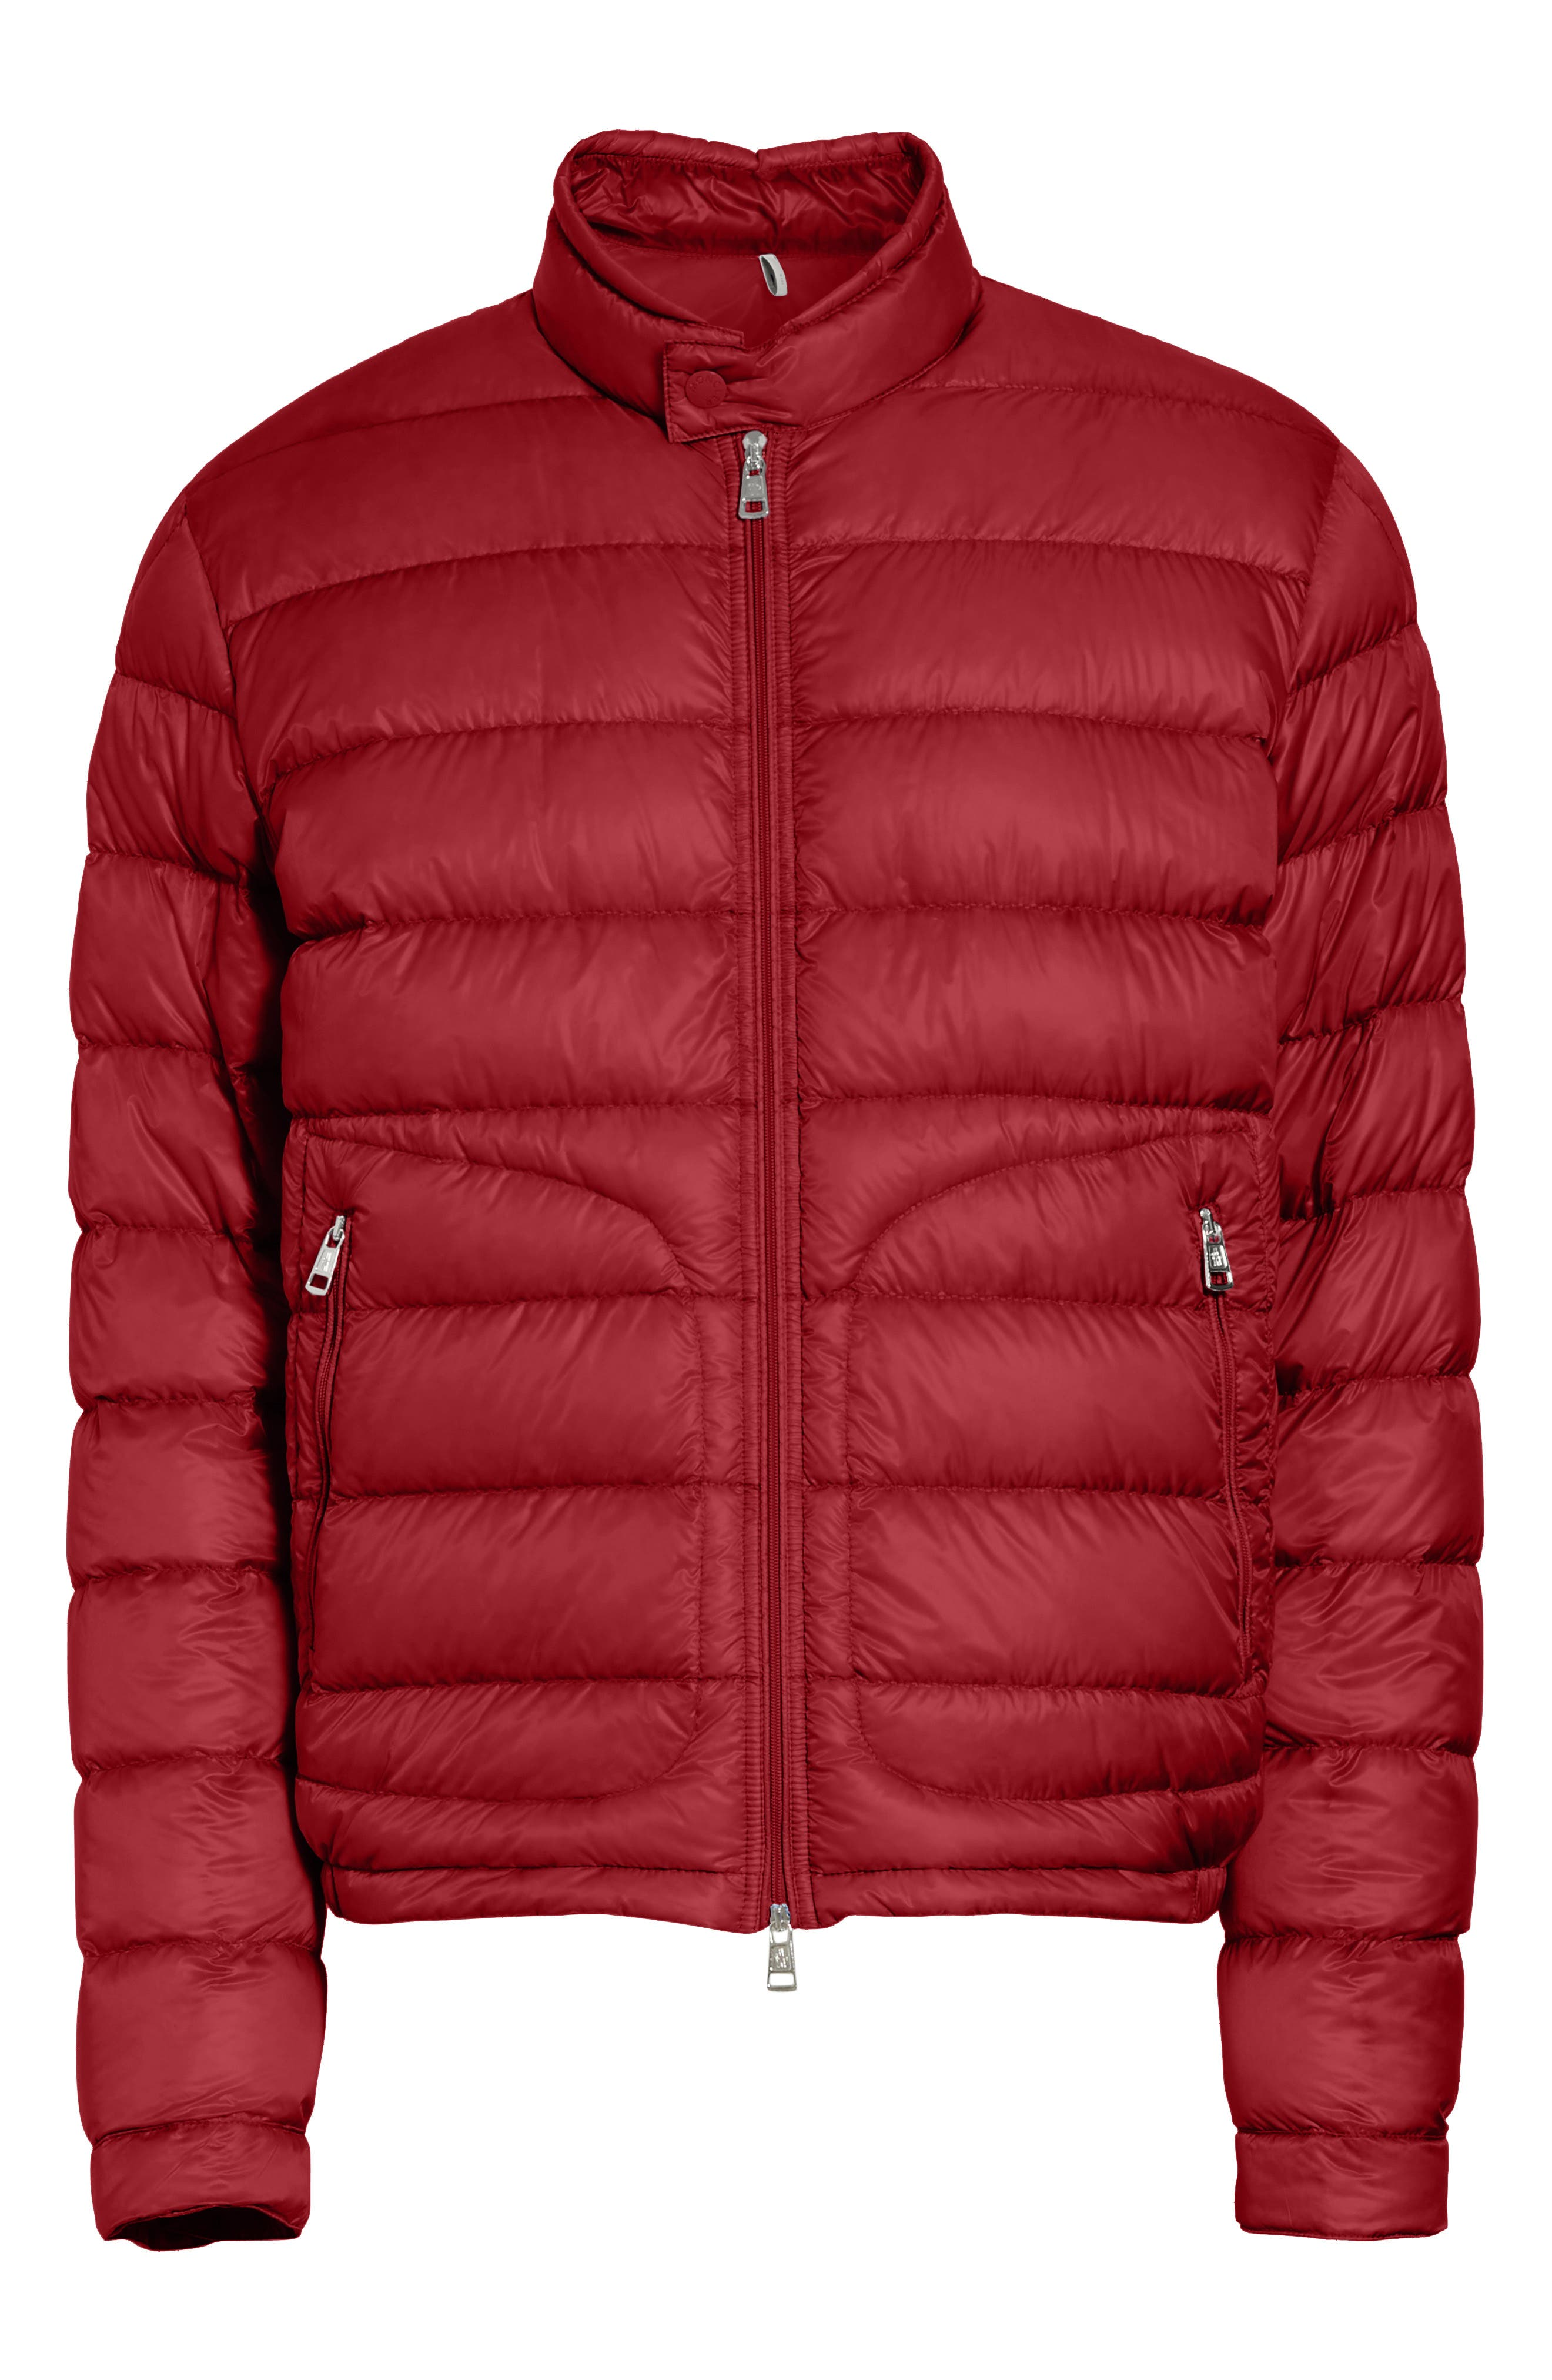 Acorus Down Quilted Jacket,                             Alternate thumbnail 6, color,                             Dark Red